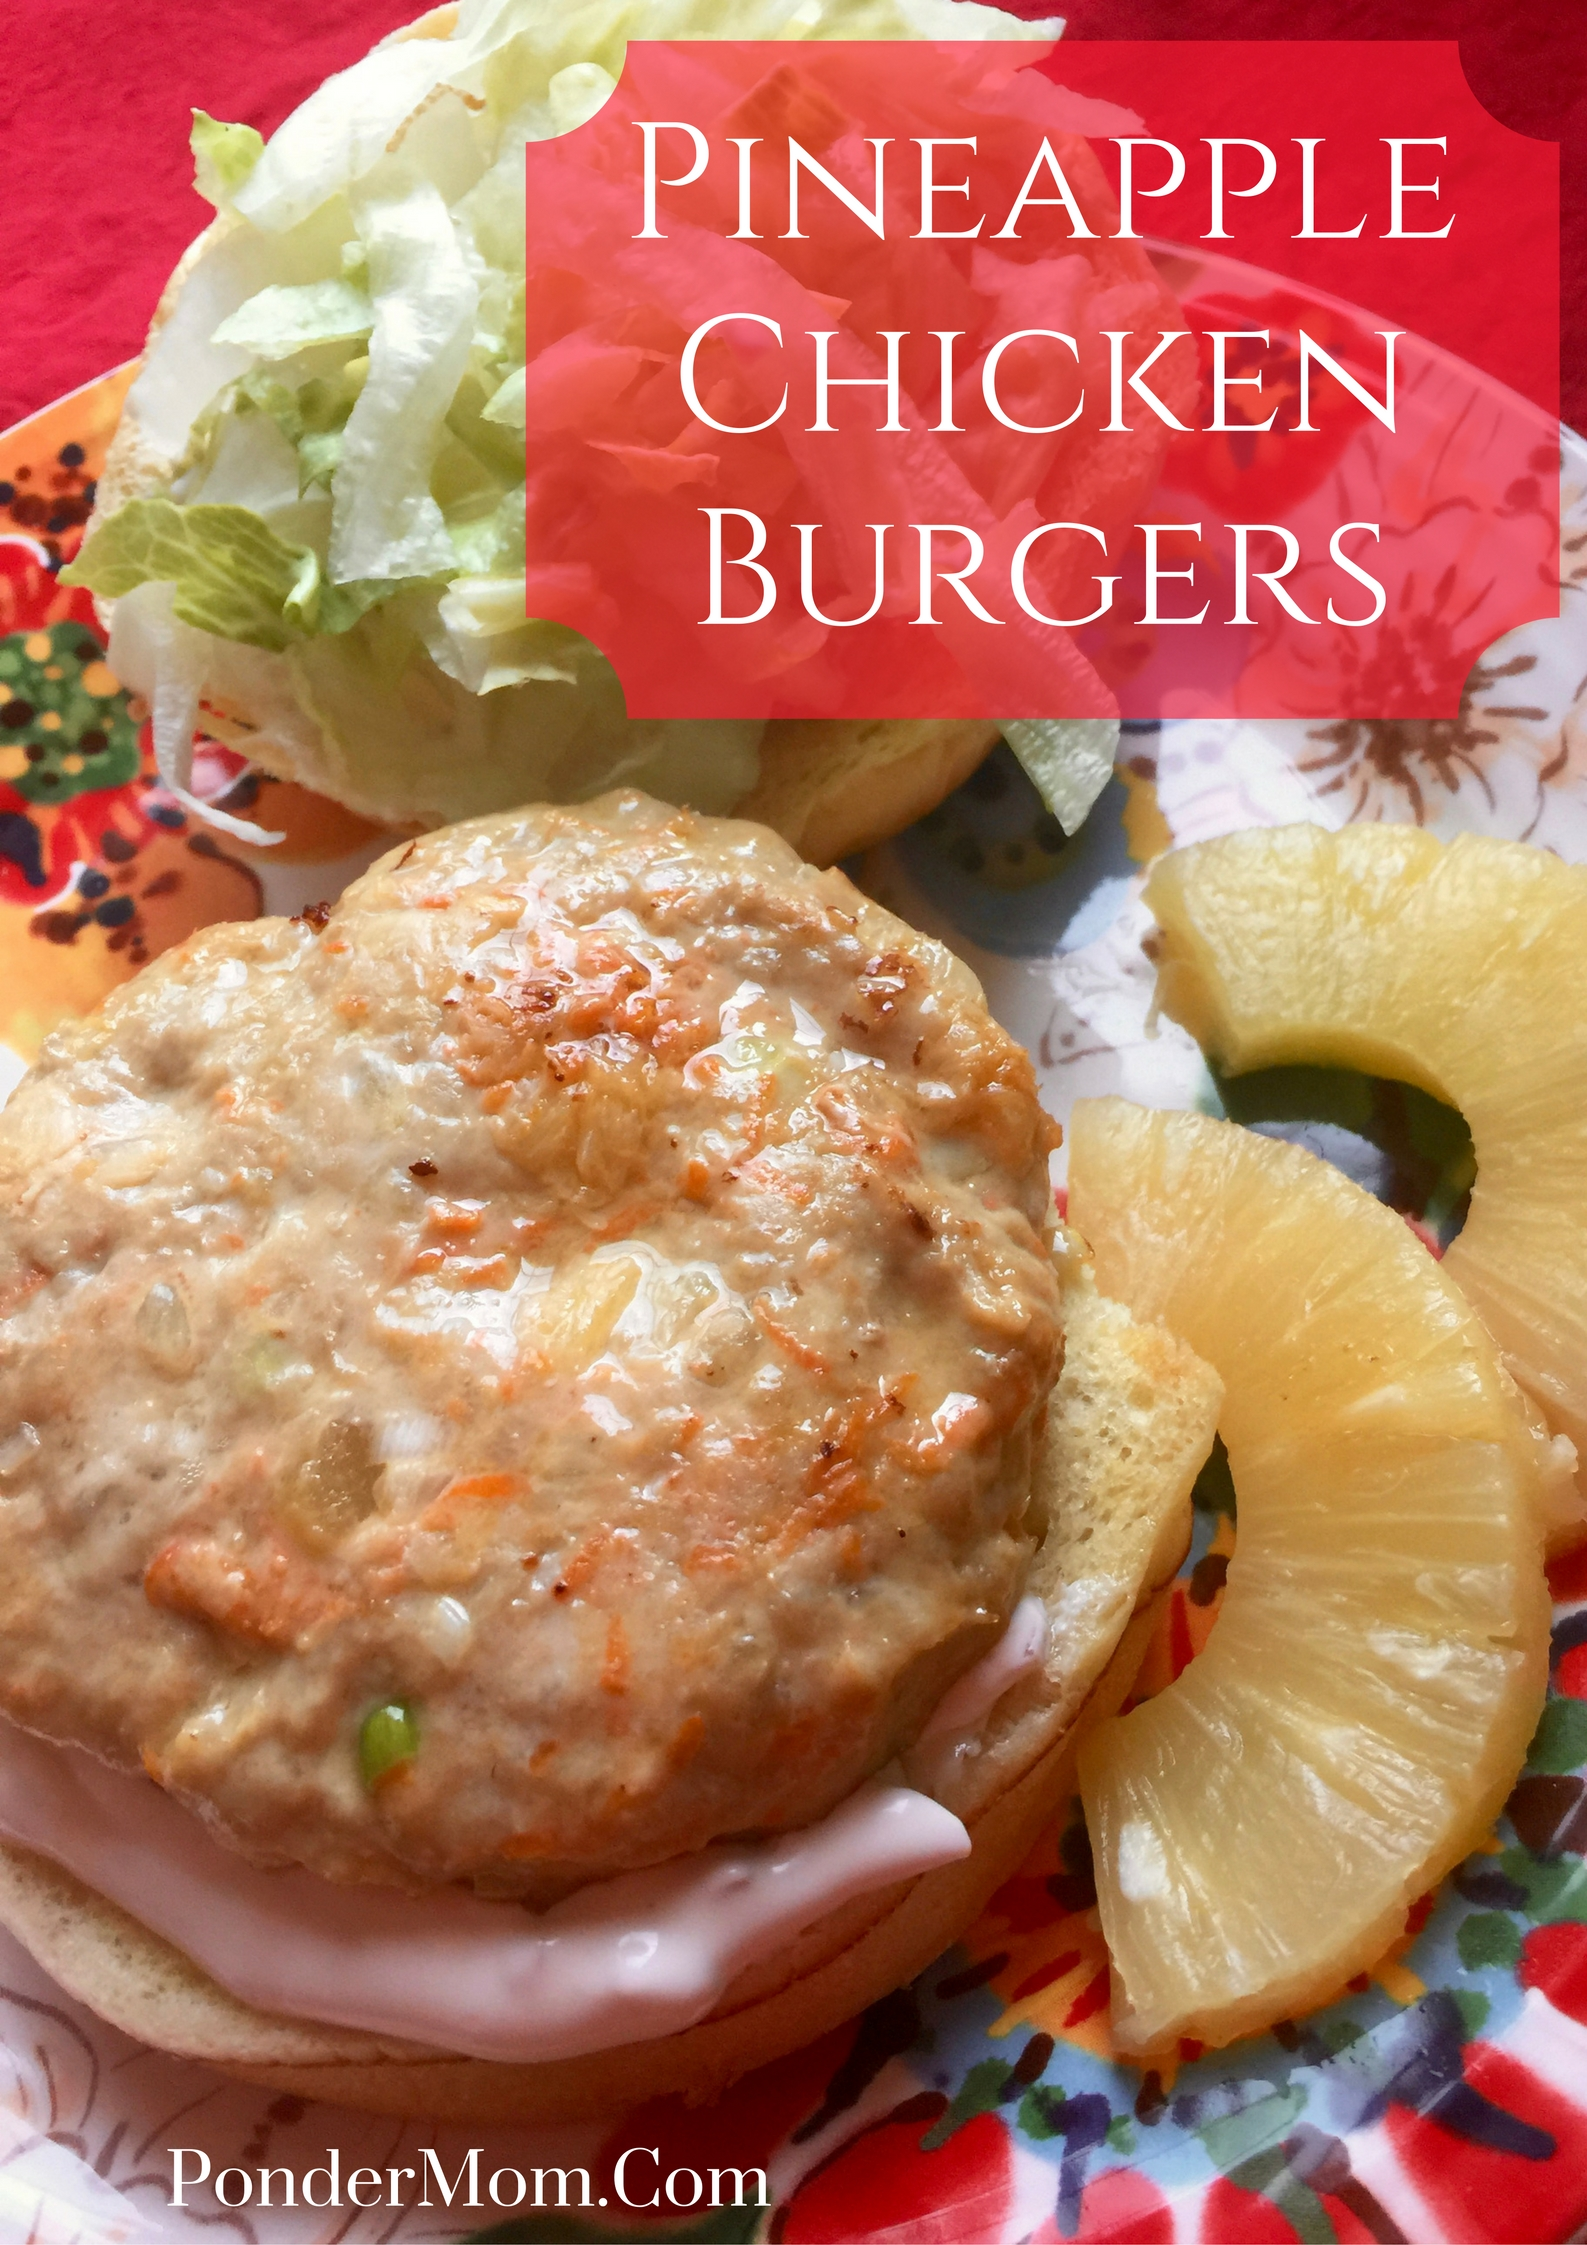 Pineapple Chicken Burgers: A Deliciously Different Weeknight Meal!